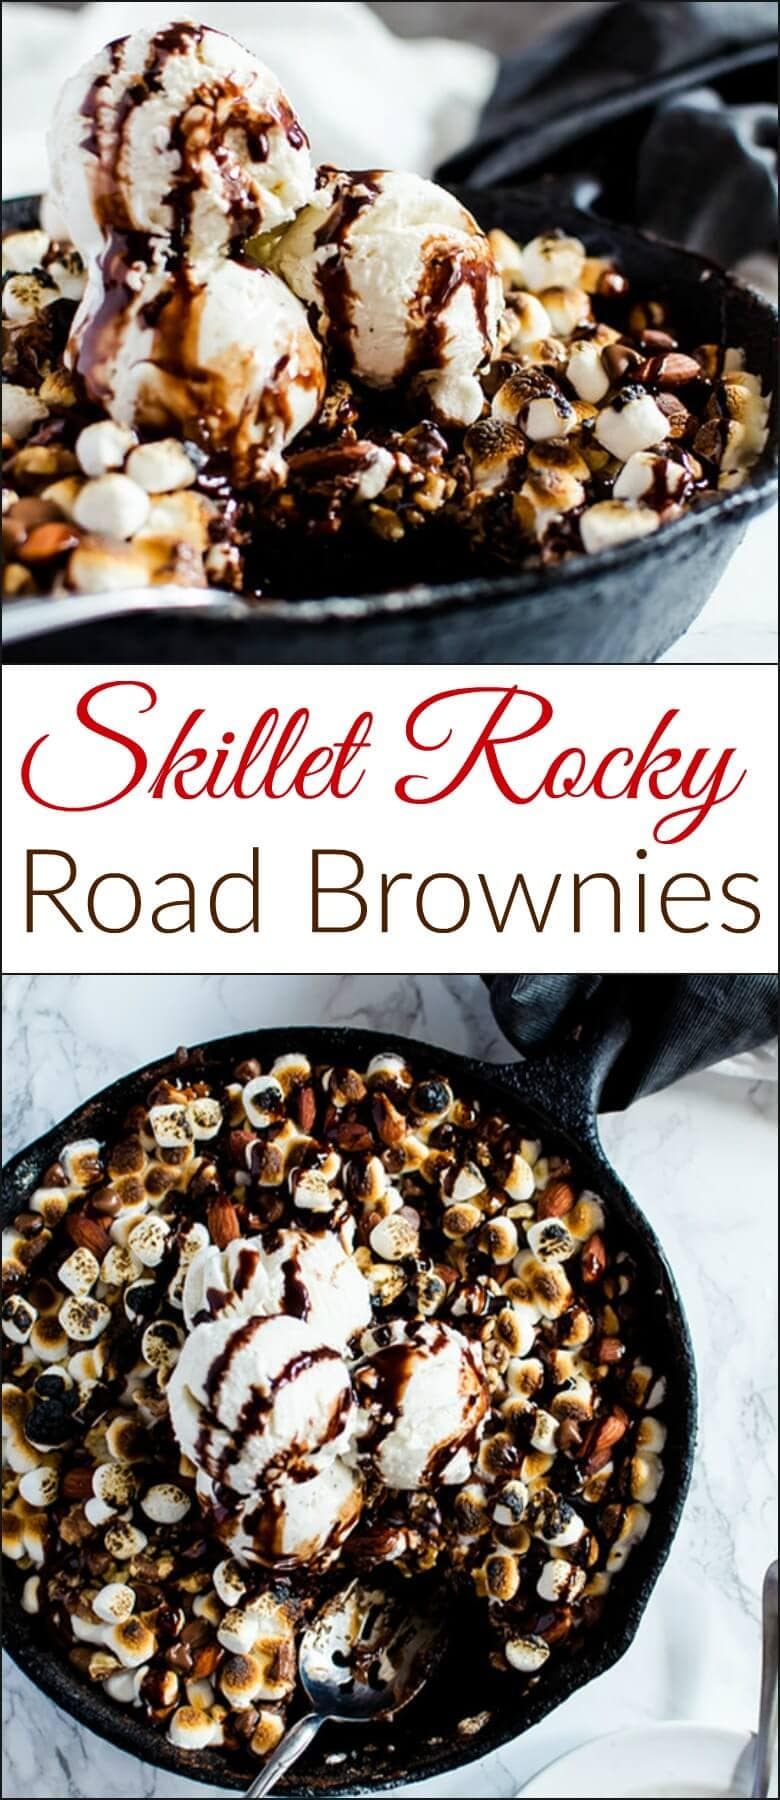 Out of this world decadent skillet rocky road brownies. This brownie is made right in the pan and is done in less than 30 minutes. It's the perfect sweet and salty dessert to share with friends over a pint of ice cream. ohsweetbasil.com